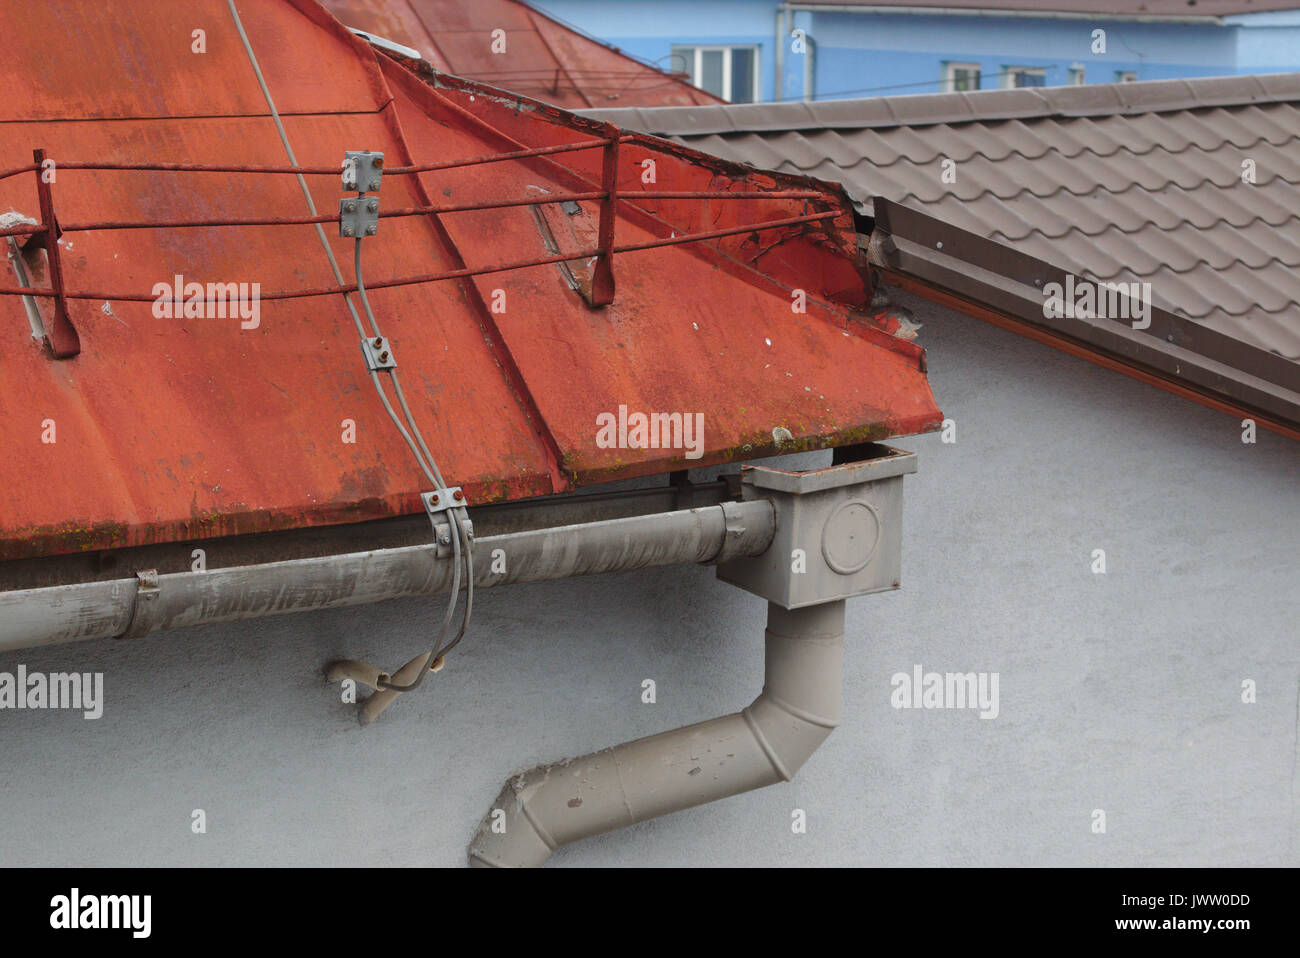 Rusty Metal Roof With Gutter And Lightning Conductor   Stock Image